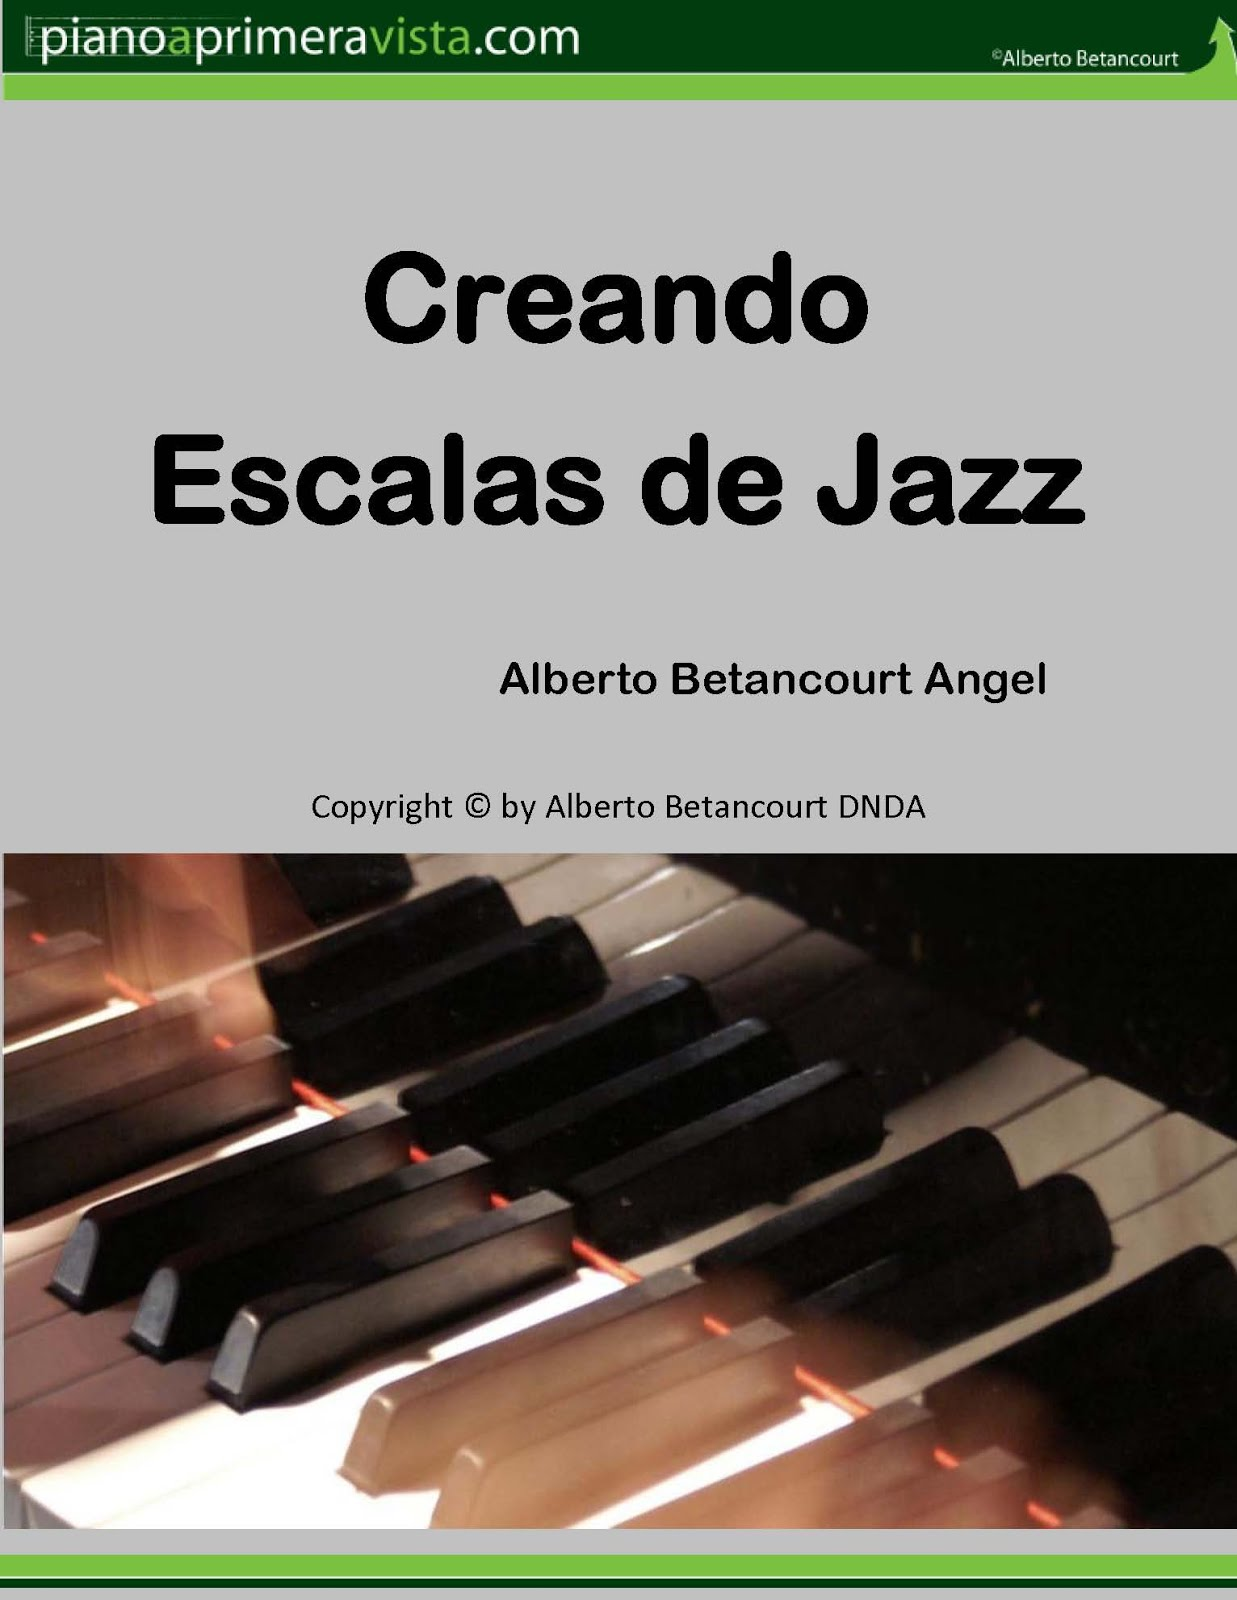 Escalas de Jazz